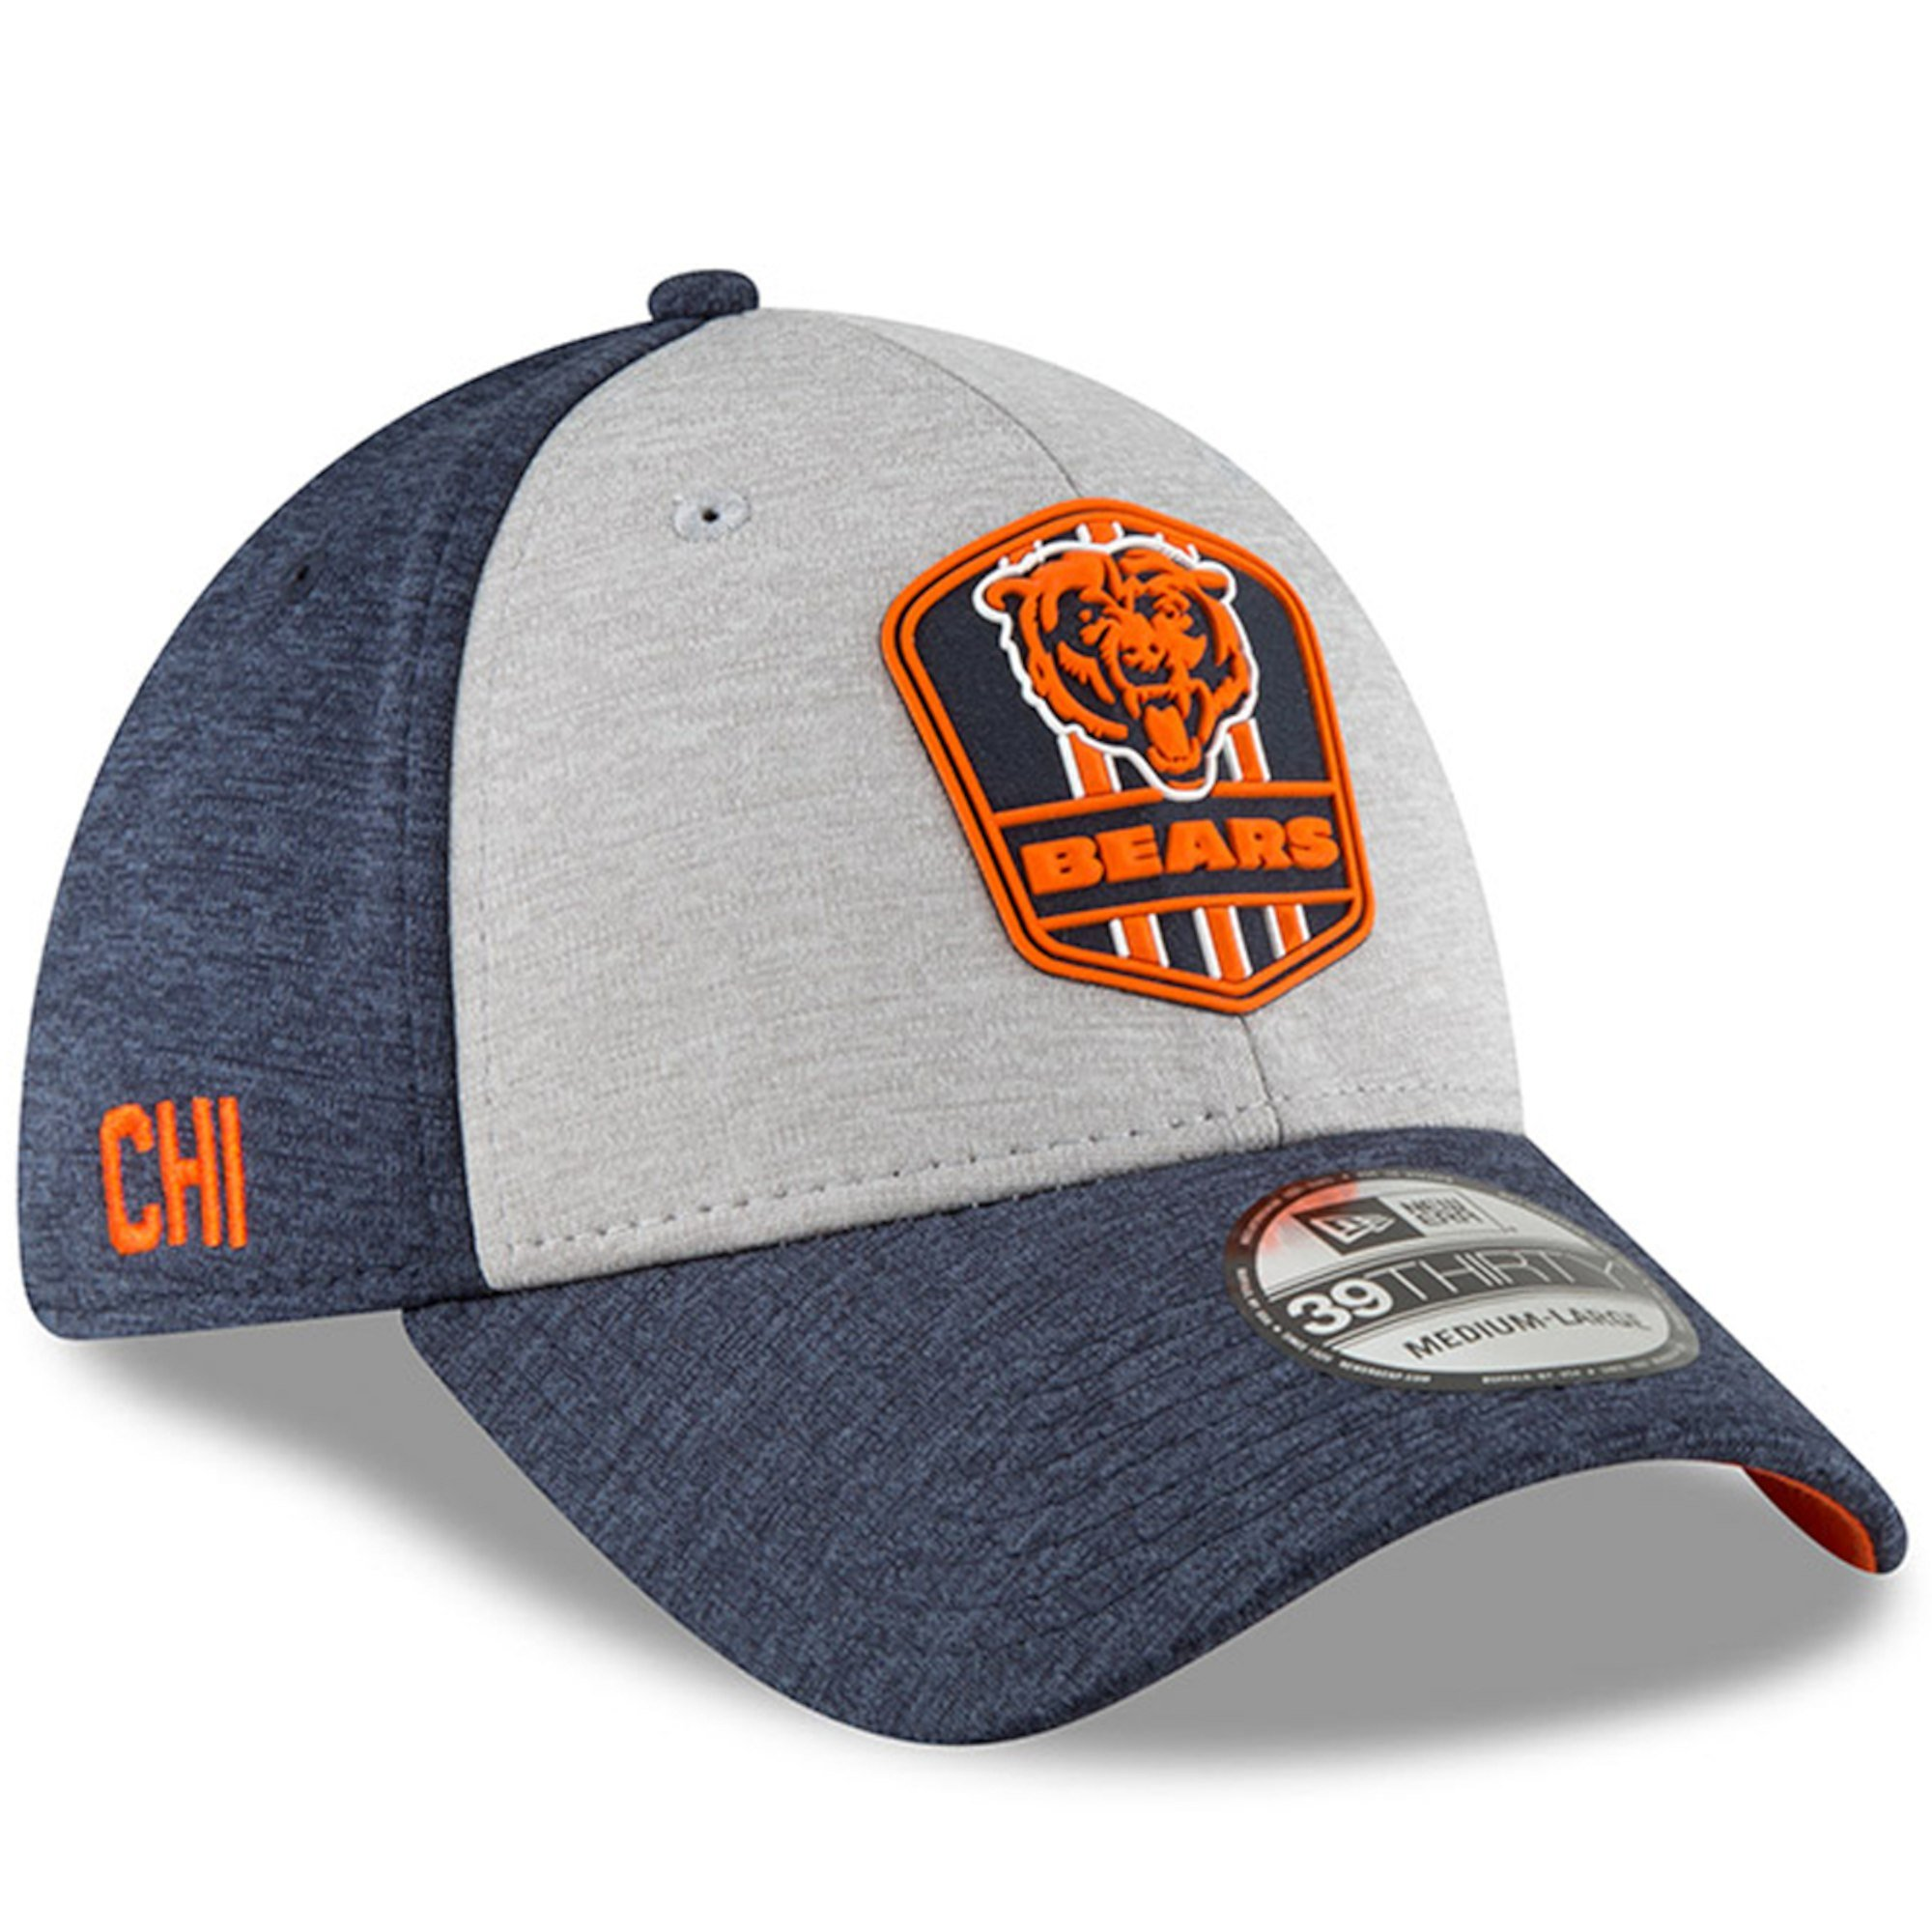 5a6466594 Men s Chicago Bears New Era Heather Gray Navy NFL18 Sideline Road Official  39THIRTY Flex Hat